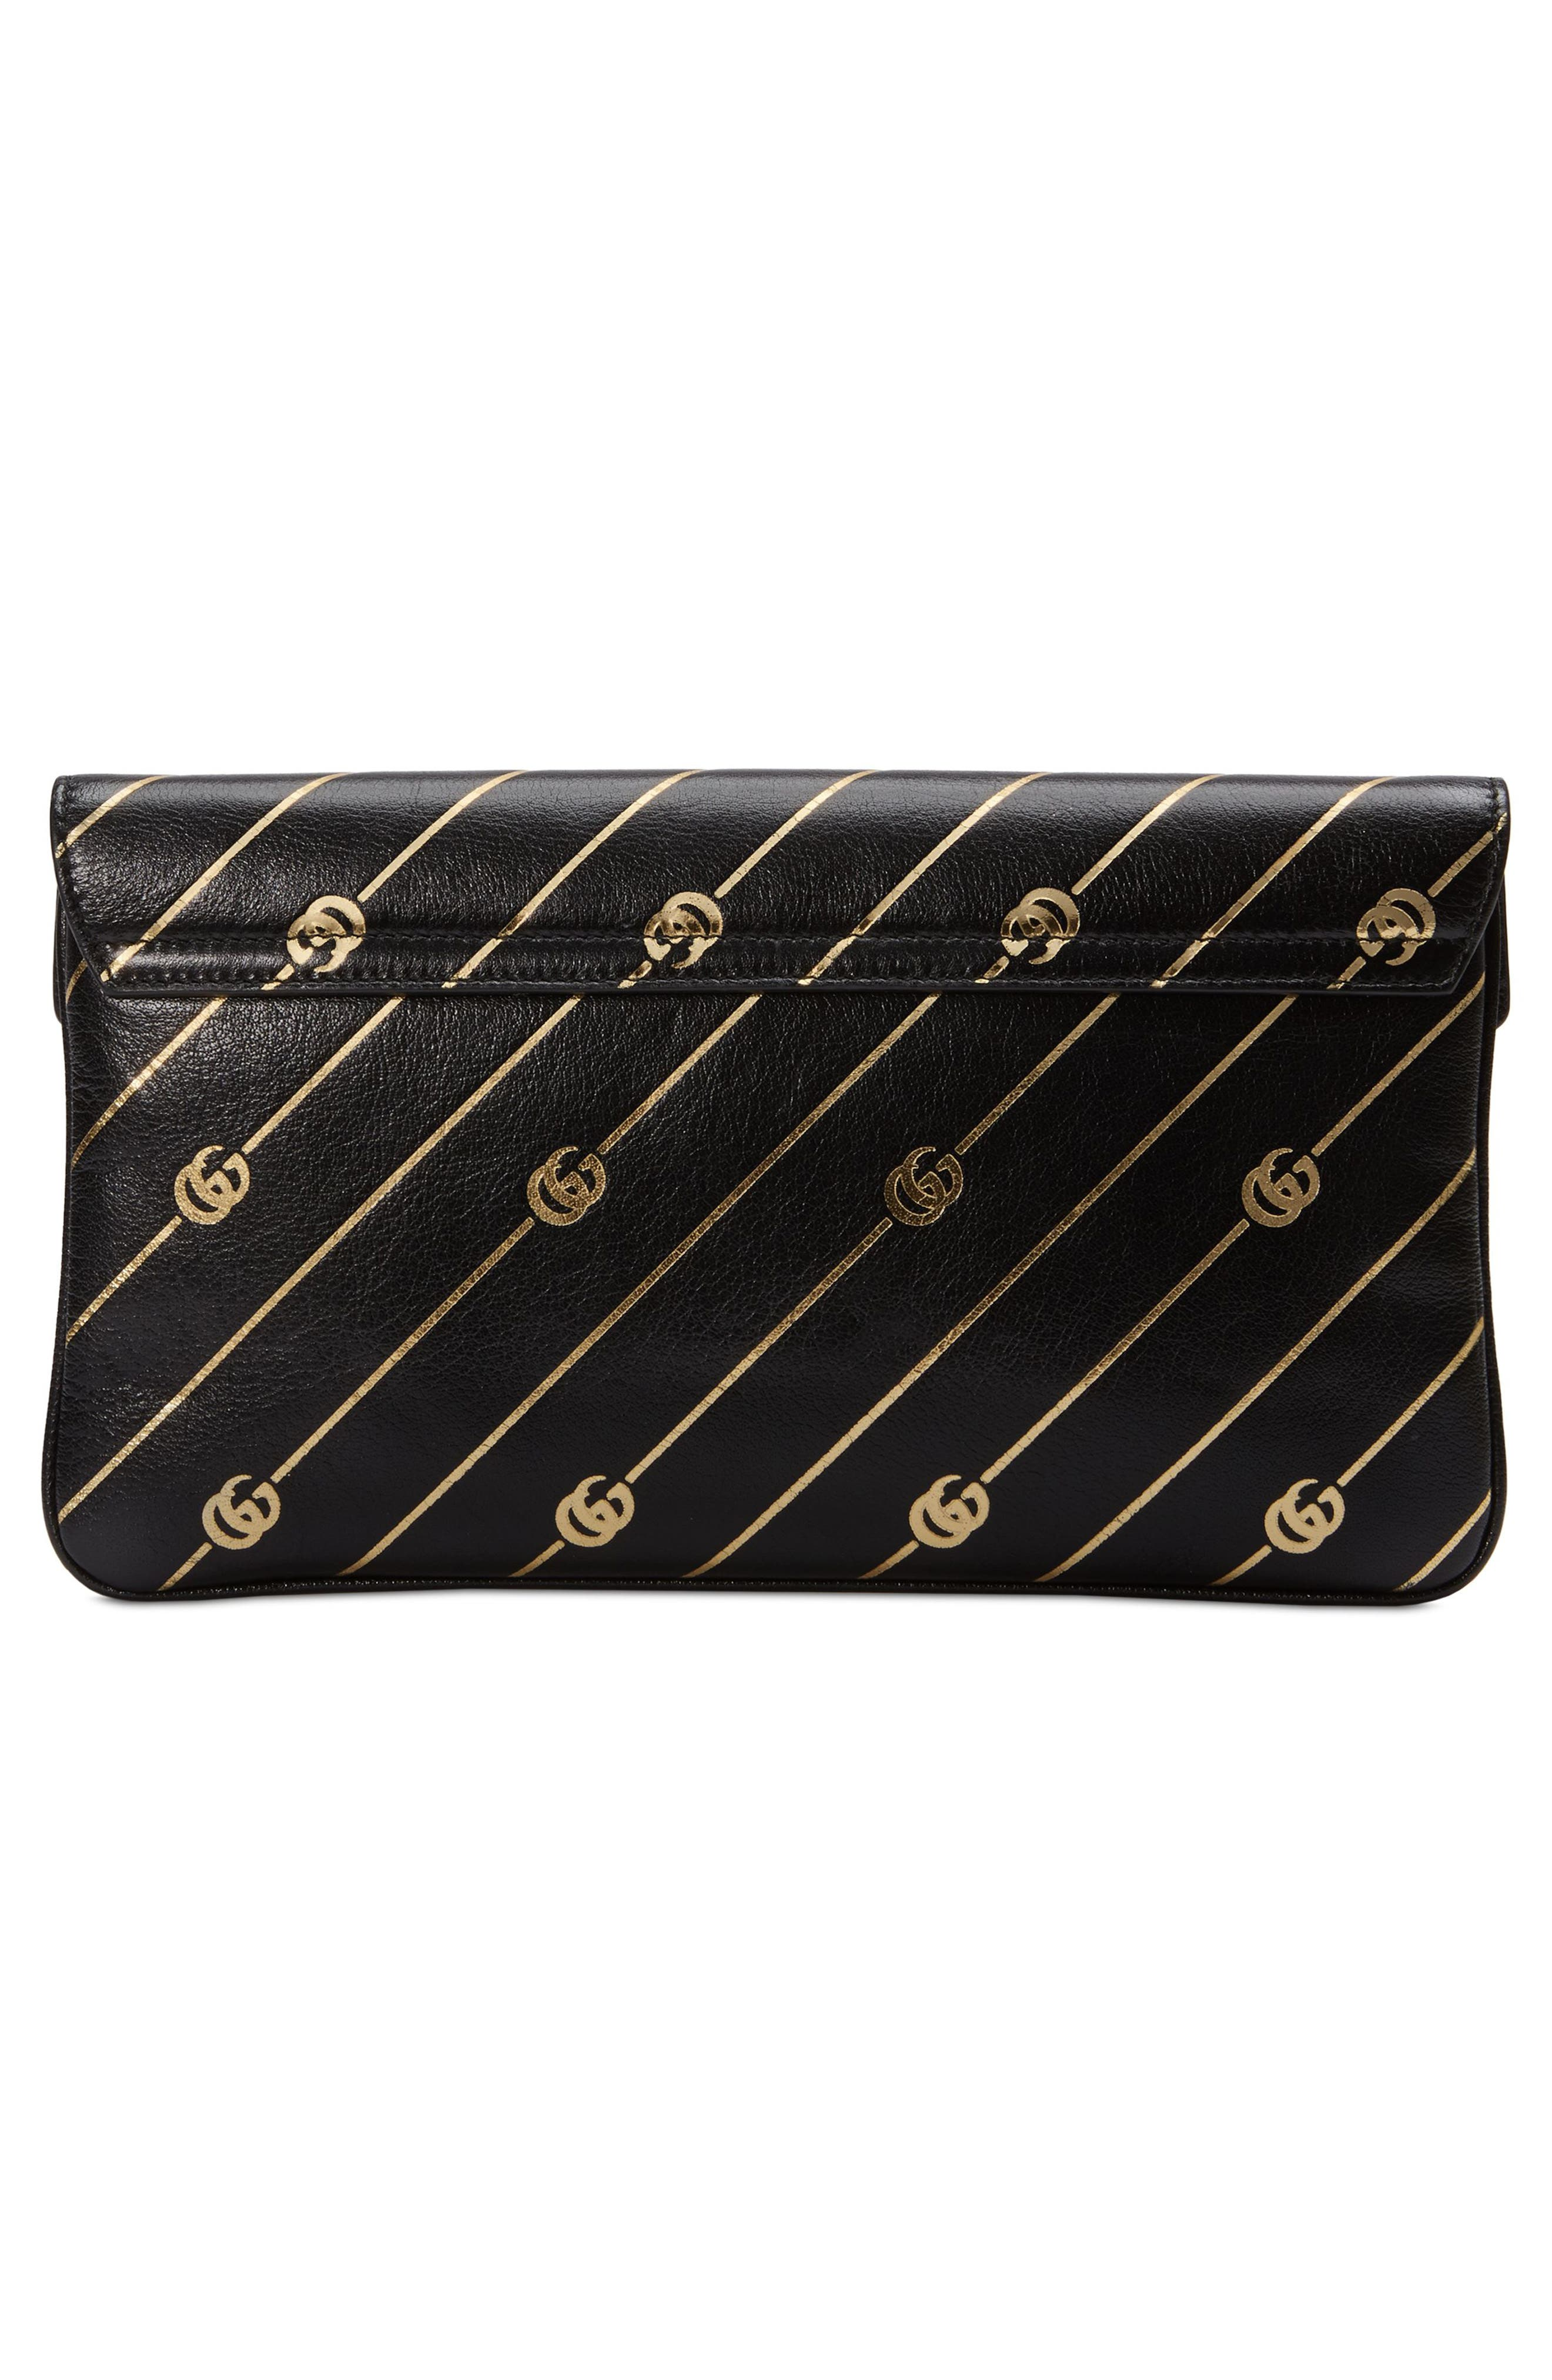 Broadway GG Archive-P Leather Envelope Clutch,                             Alternate thumbnail 2, color,                             NERO ORO MULTI